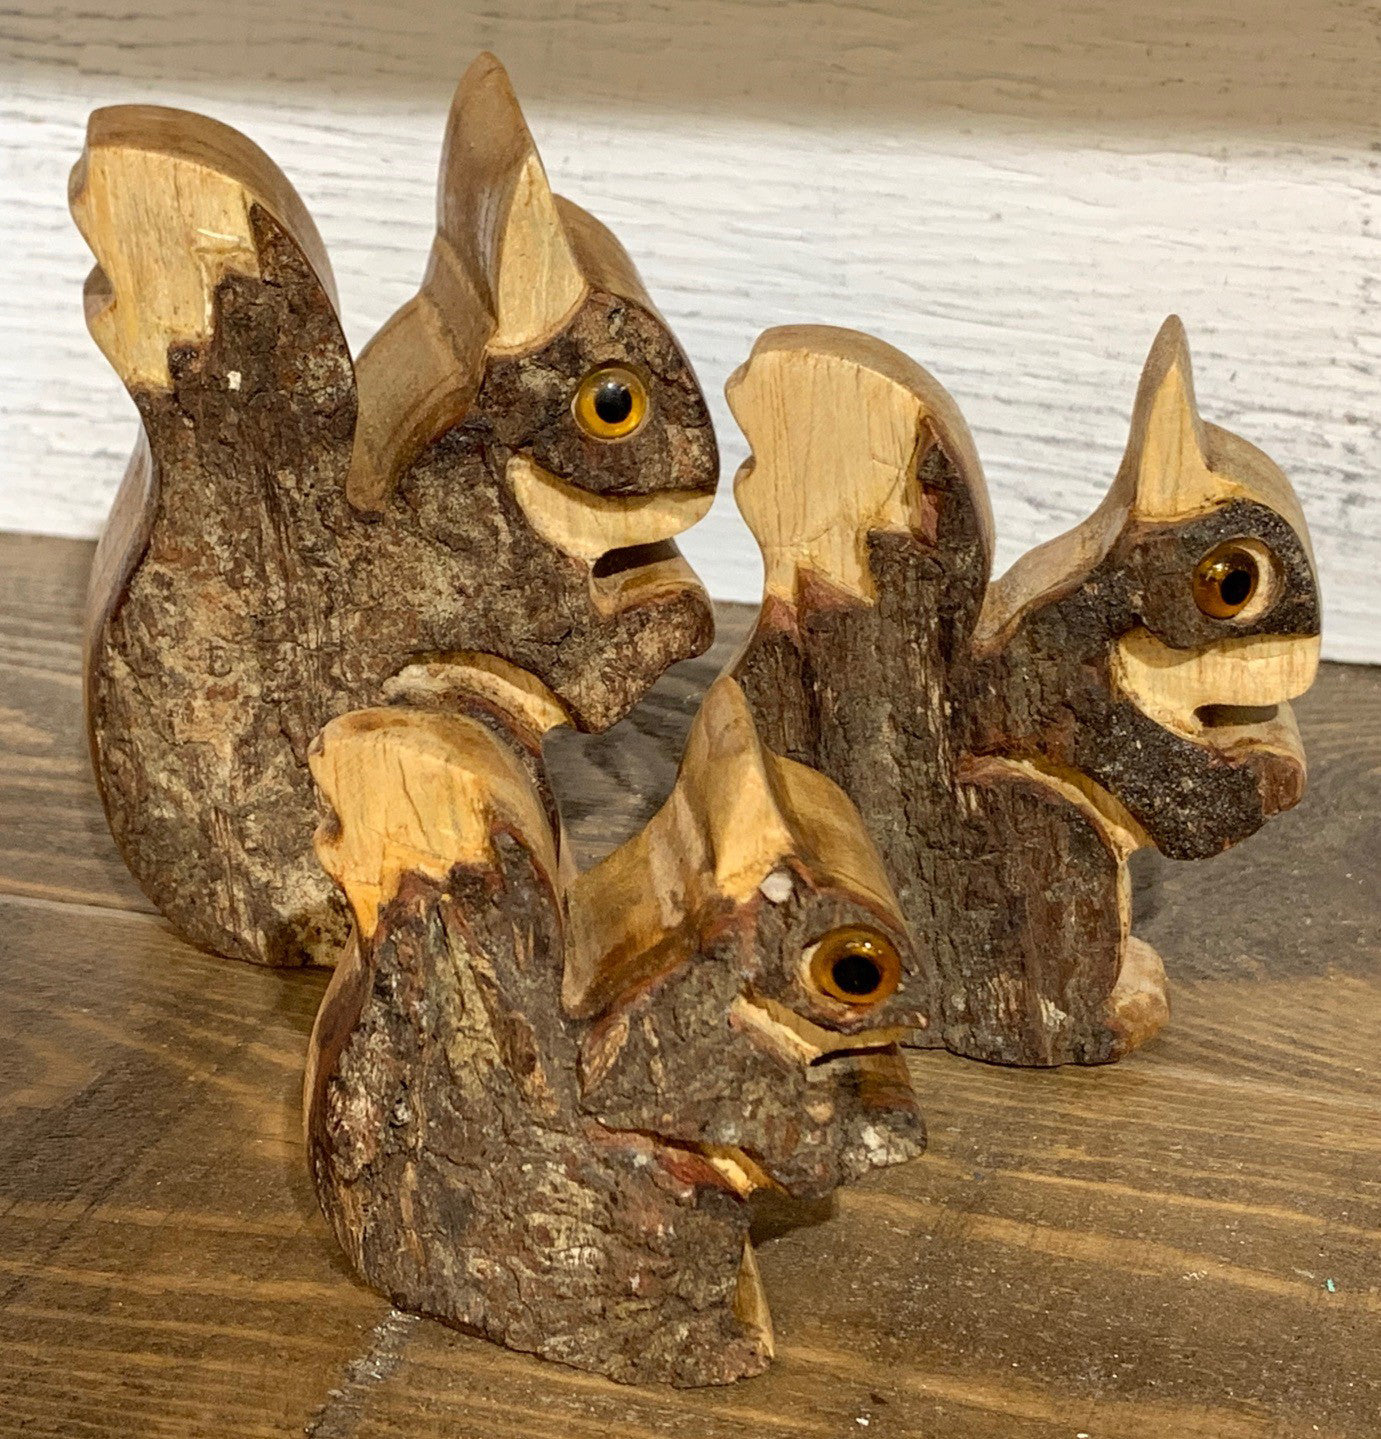 squirrel - SET OF 3 - jampanis wood